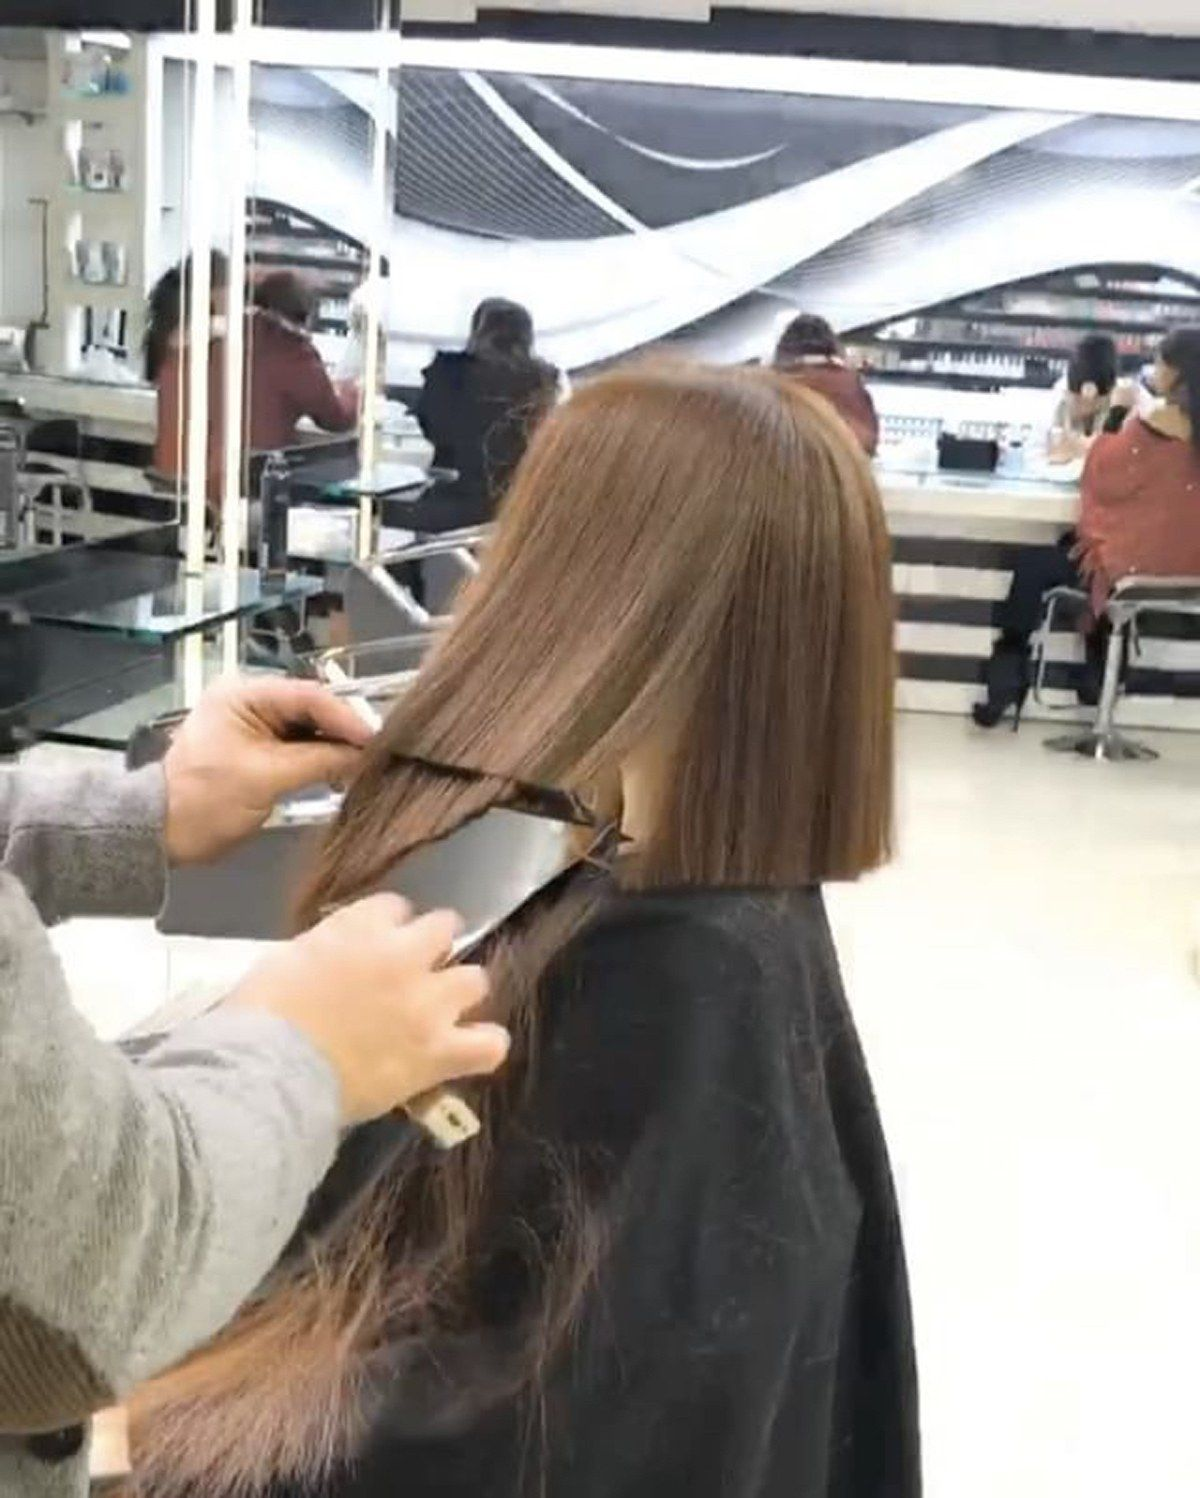 Watch This Stylist Cut a Perfect Bob in Under One